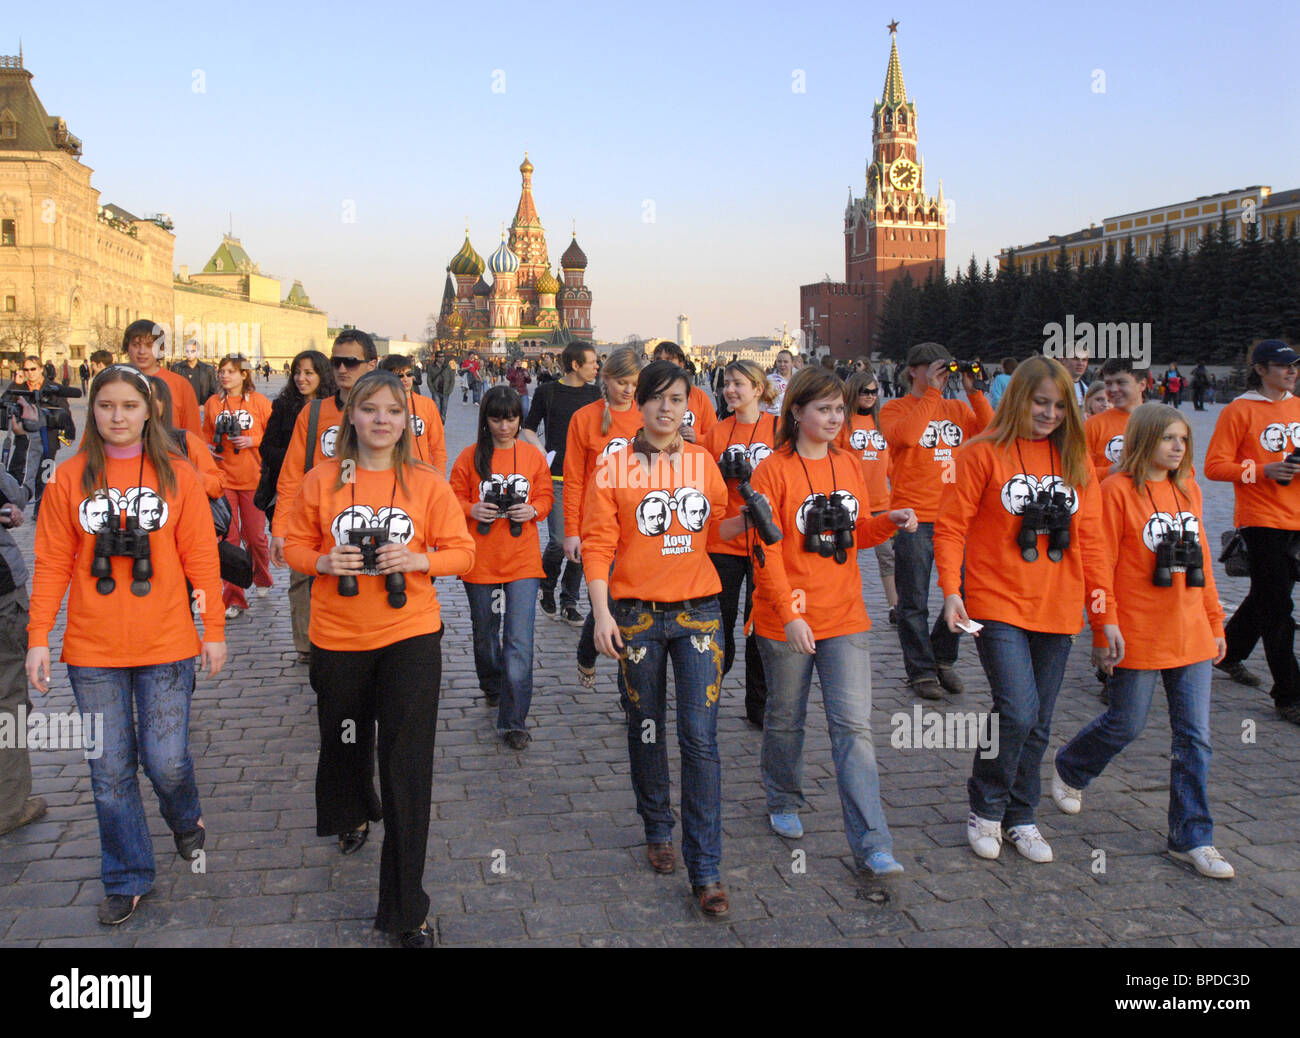 Putin fan club members rally in Moscow's Red Square - Stock Image